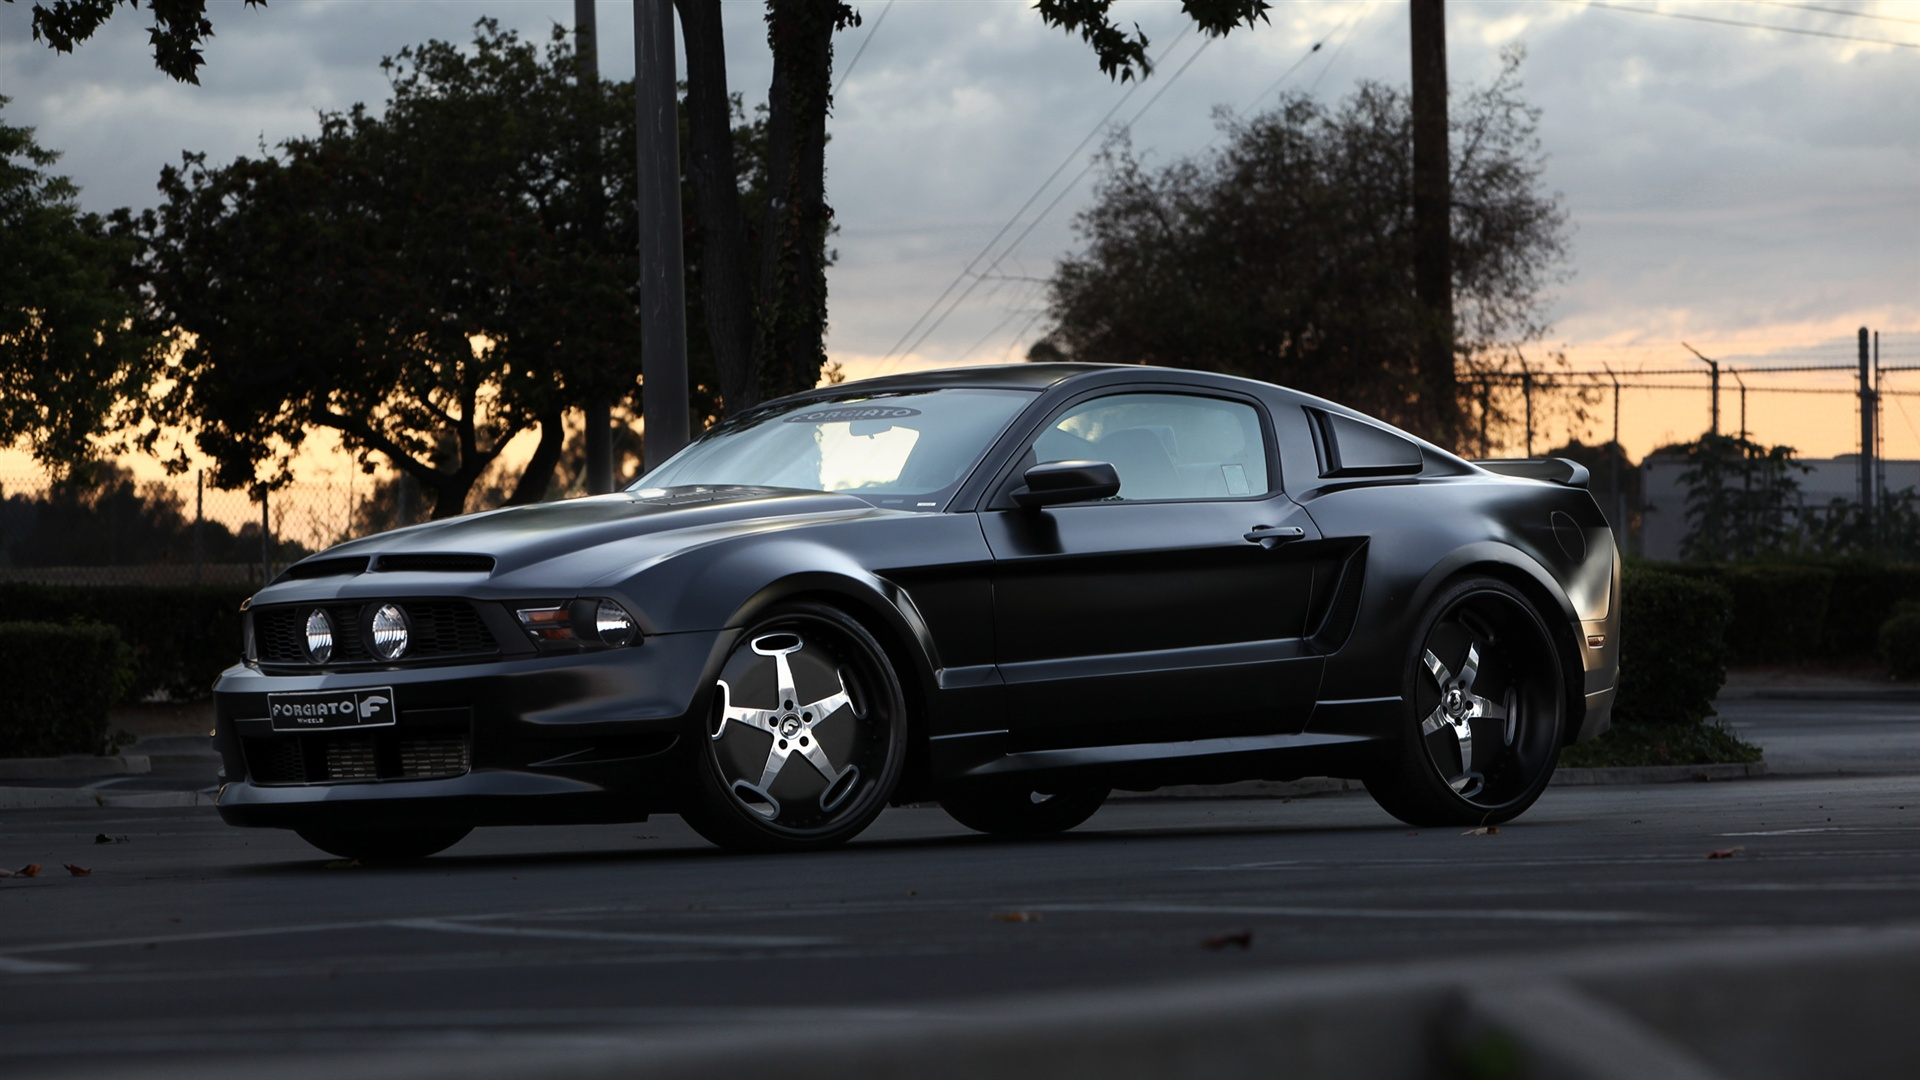 Wallpaper Ford Mustang Gt Supercar 2560x1440 Qhd Picture Image